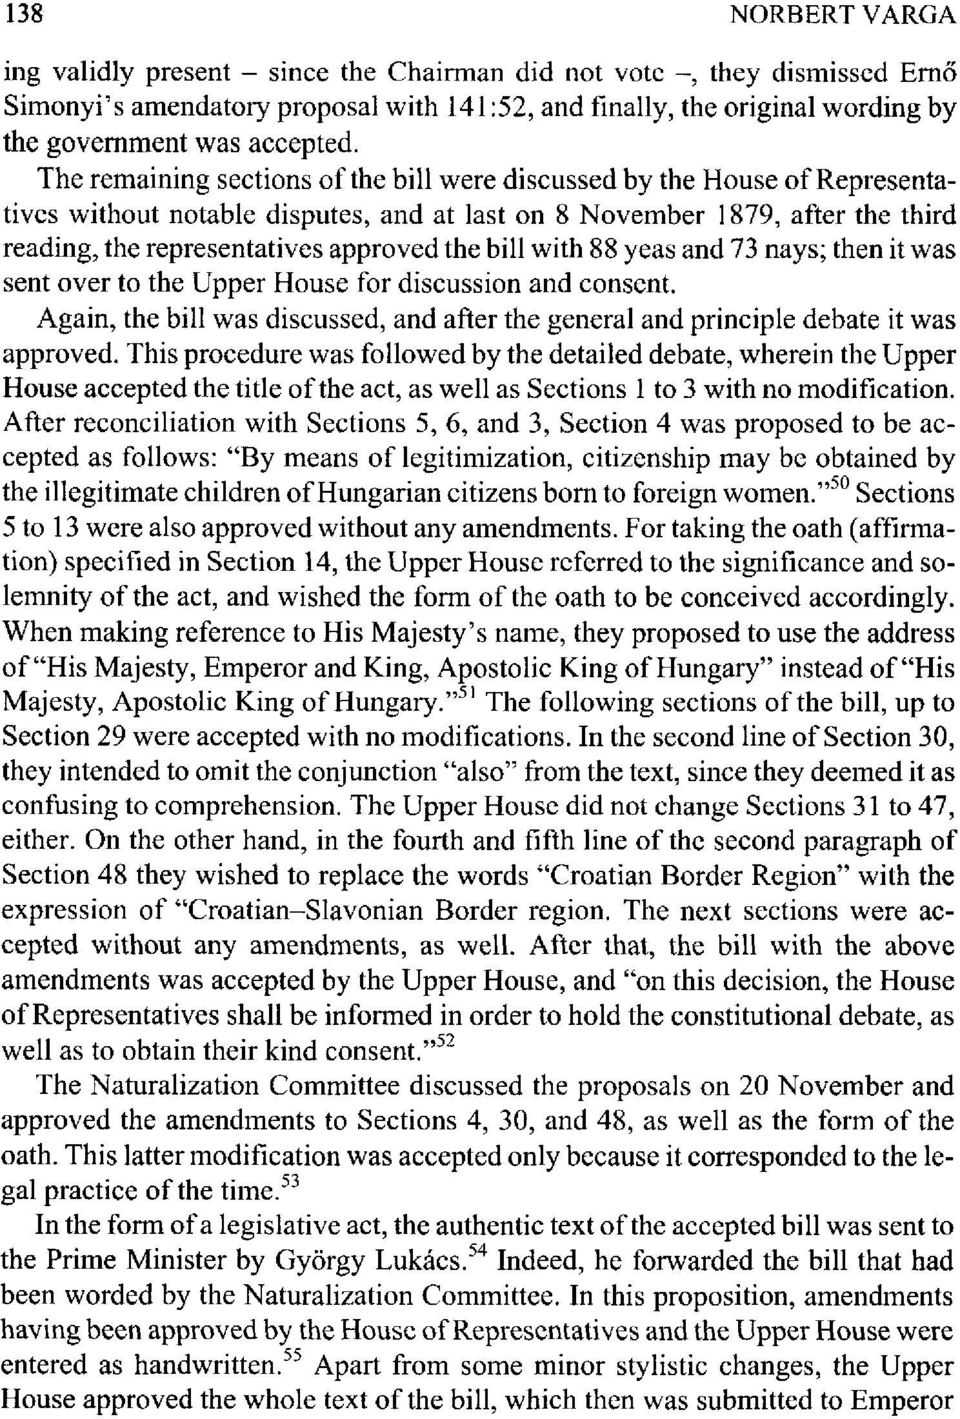 The remaining sections of the bill were discussed by the House of Representatives without notable disputes, and at last on 8 November 1879, after the third reading, the representatives approved the